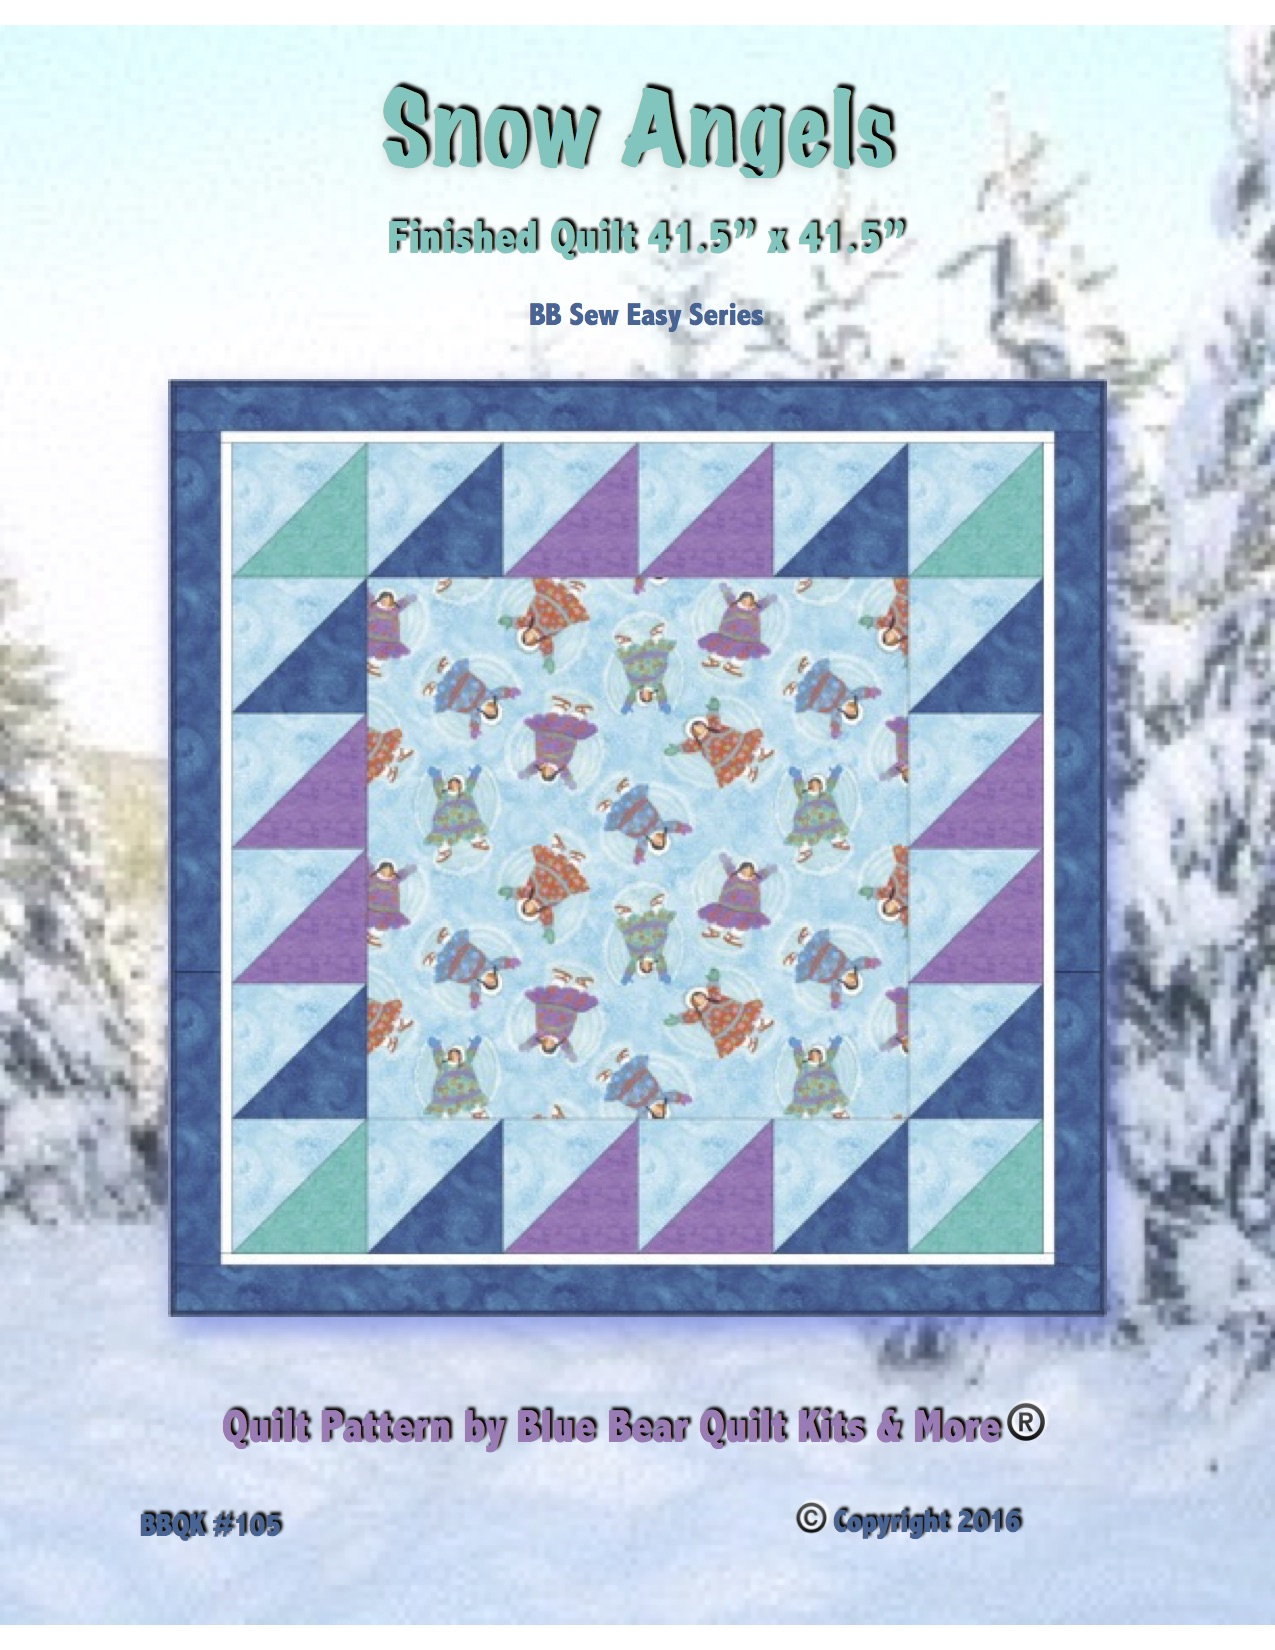 Baby Quilt Patterns.Snow Angels Quilt Pattern Baby Quilt Hard Copy Mailed To You Easy For Beginners Holiday Present Eskimo Snow Bright Colors For Child Or Girl